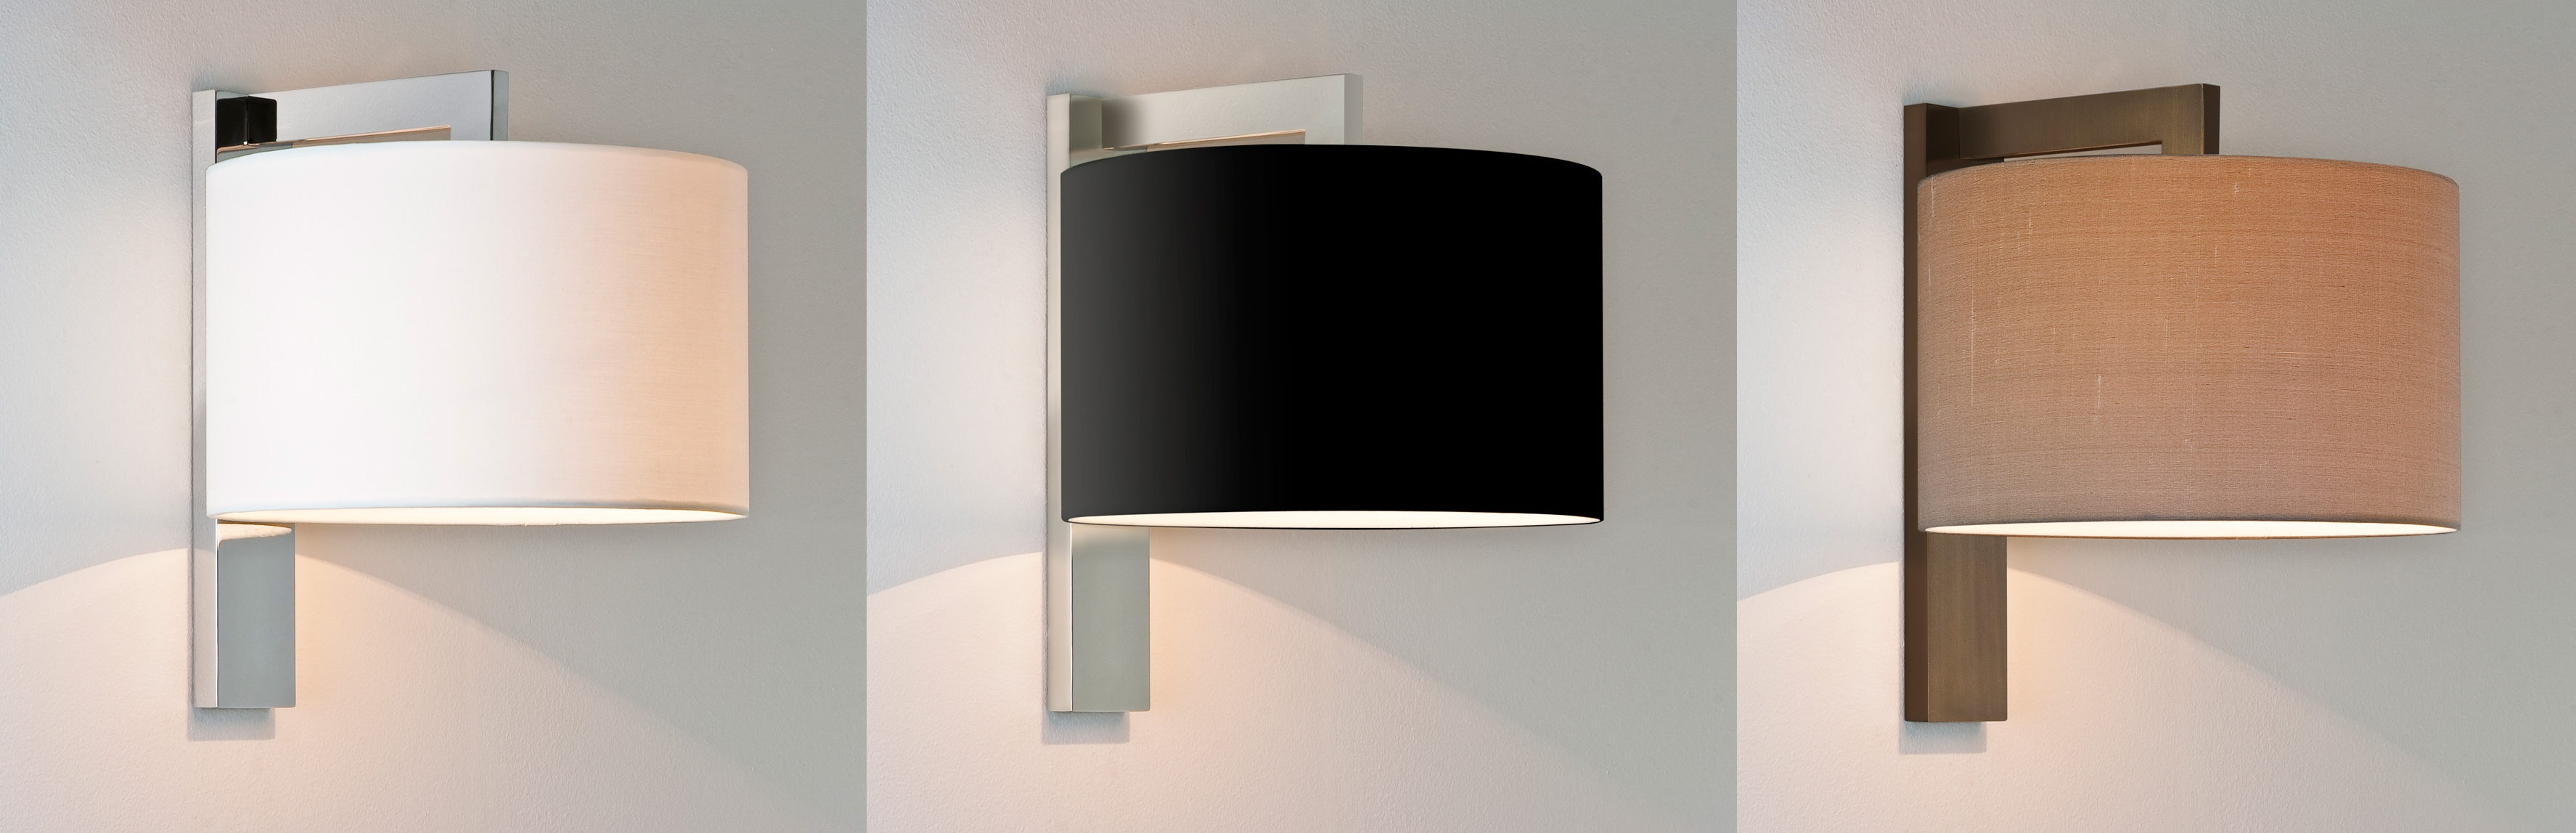 Astro ravello indoor wall lights fabric drum shade 60w e27 ebay sentinel astro ravello indoor wall lights fabric drum shade 60w e27 mozeypictures Choice Image